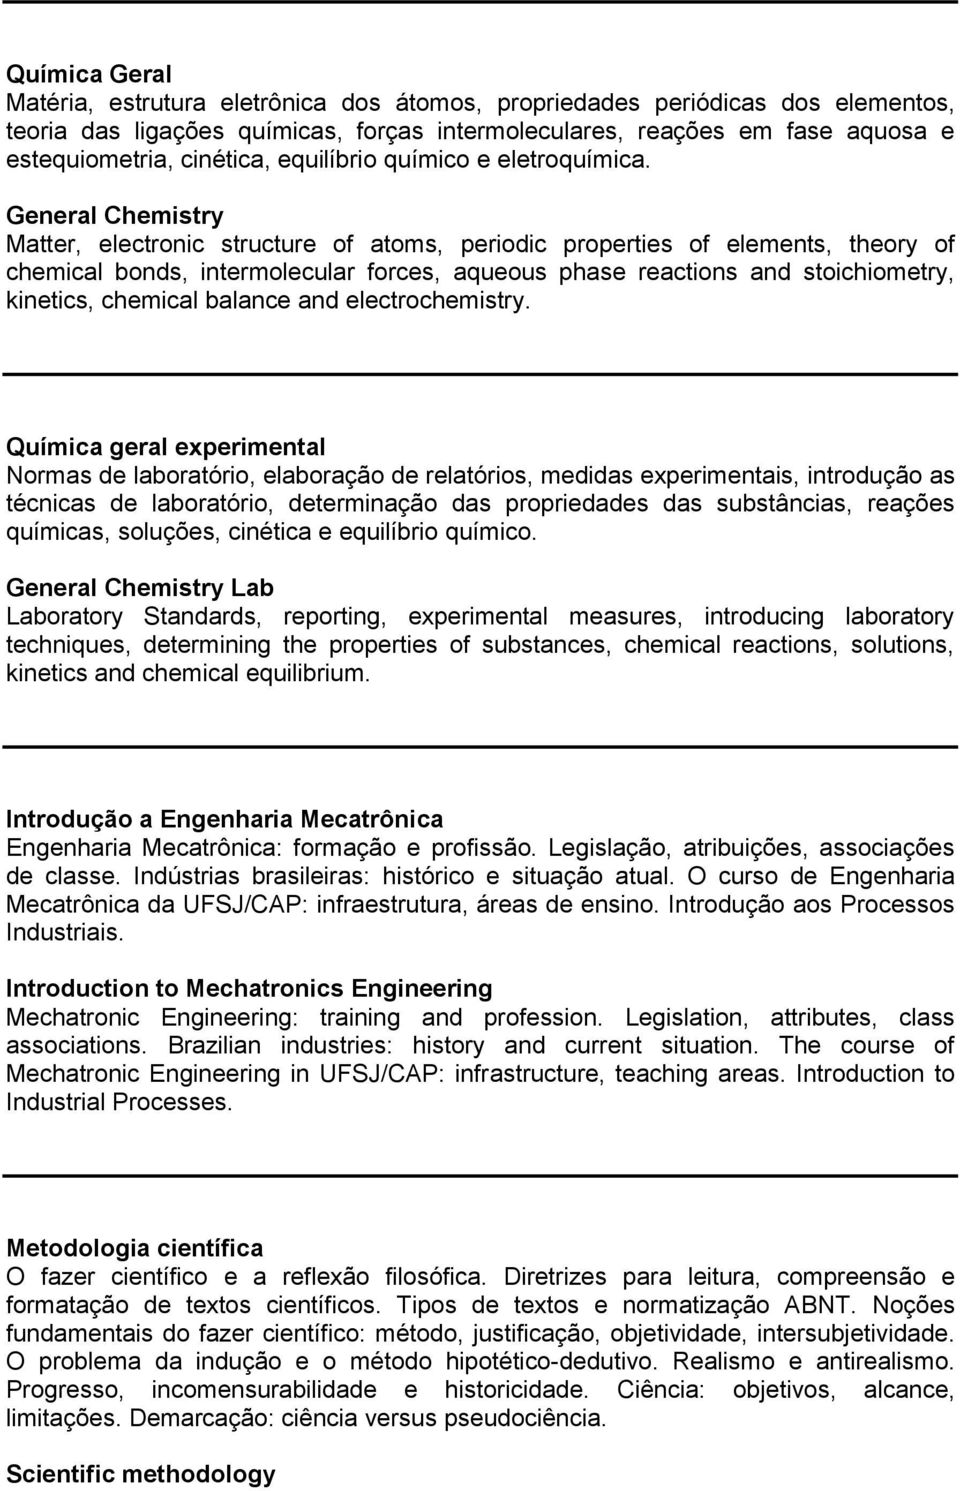 General Chemistry Matter, electronic structure of atoms, periodic properties of elements, theory of chemical bonds, intermolecular forces, aqueous phase reactions and stoichiometry, kinetics,